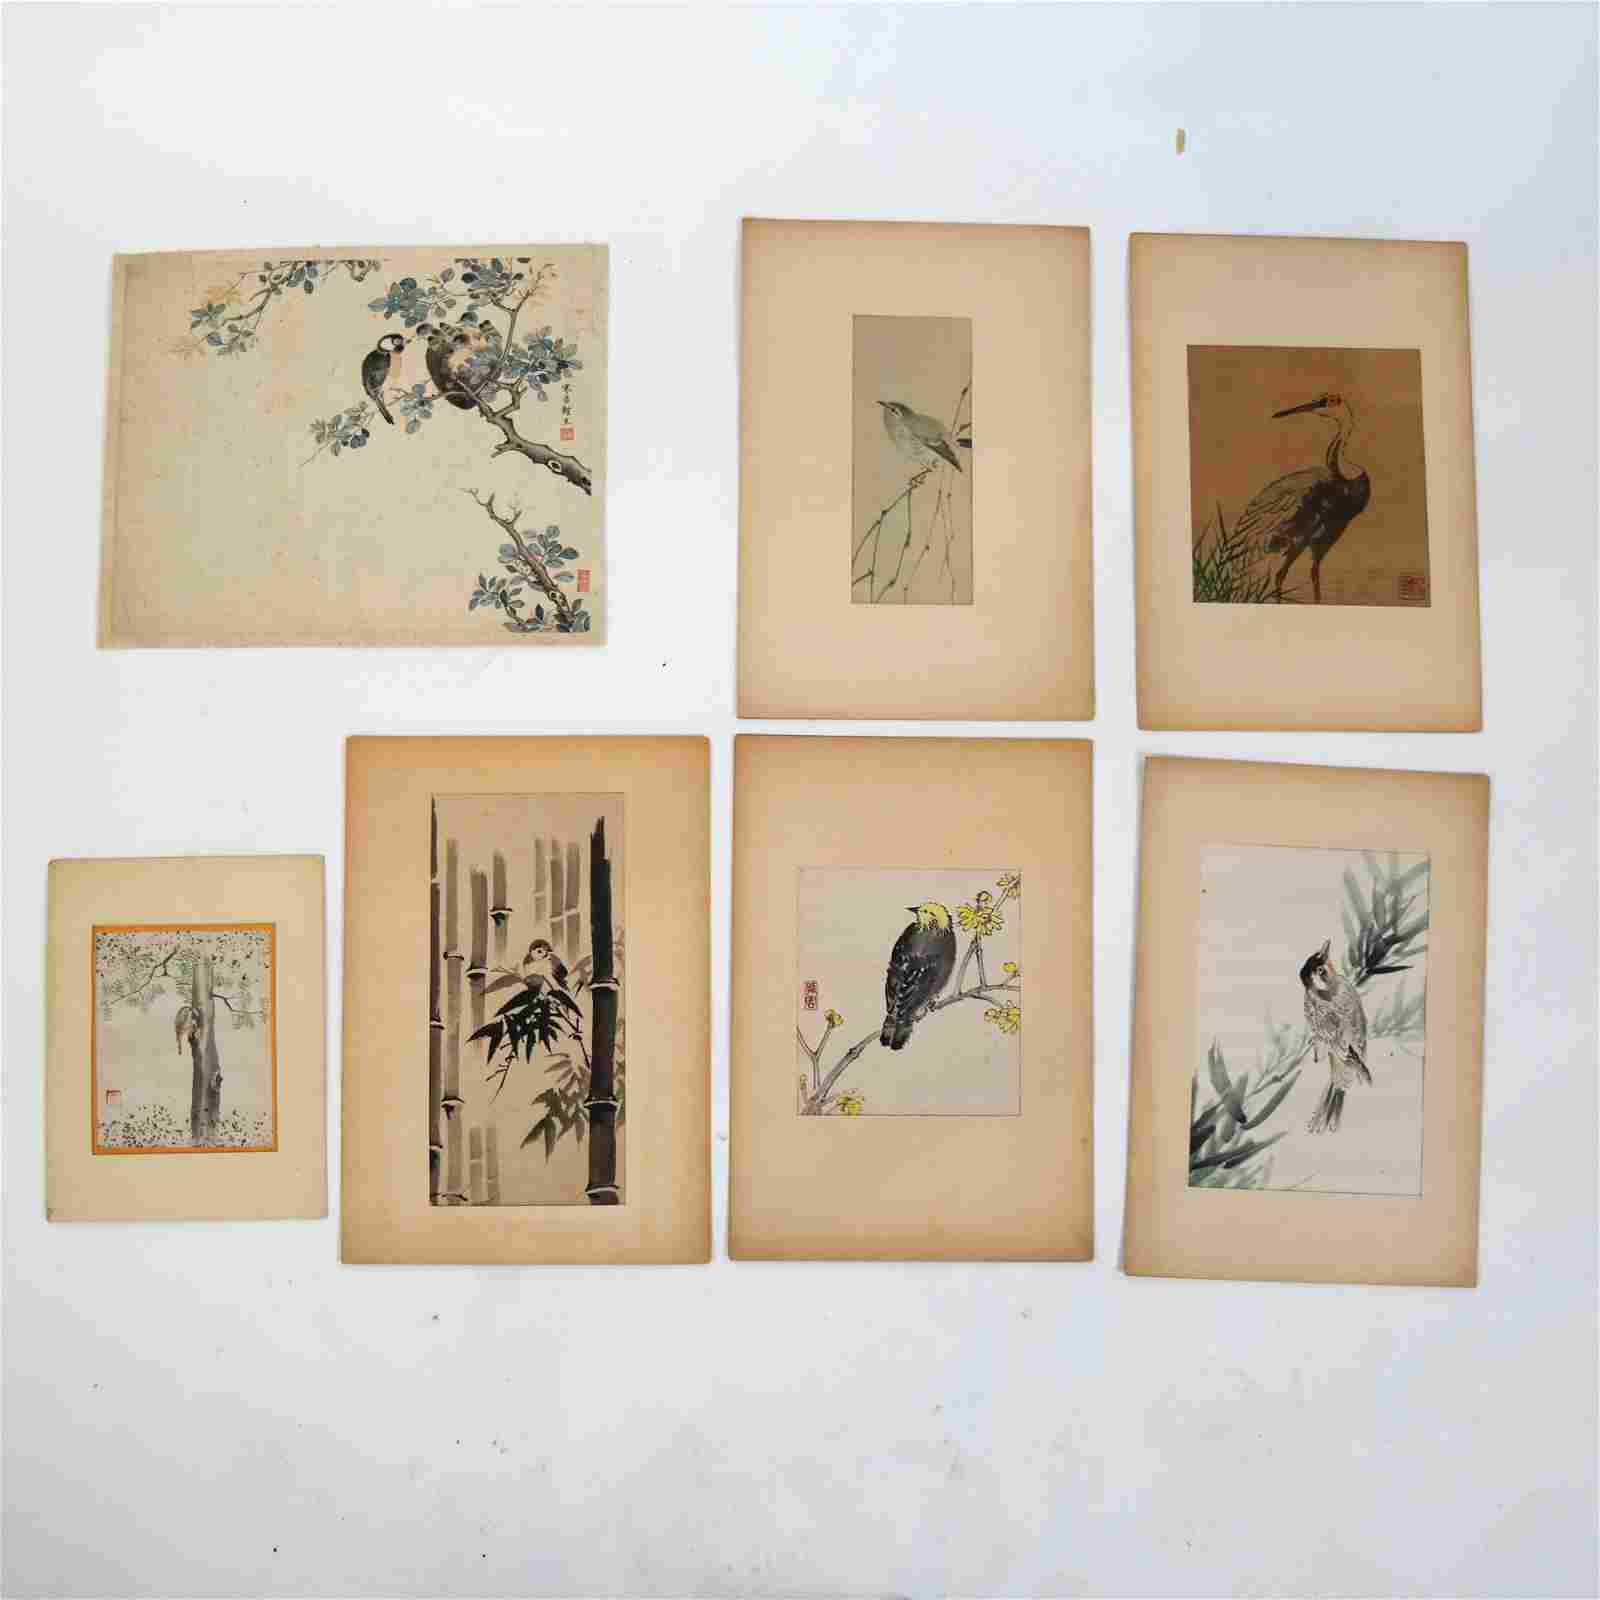 7 Chinese Bird-Themed Watercolors